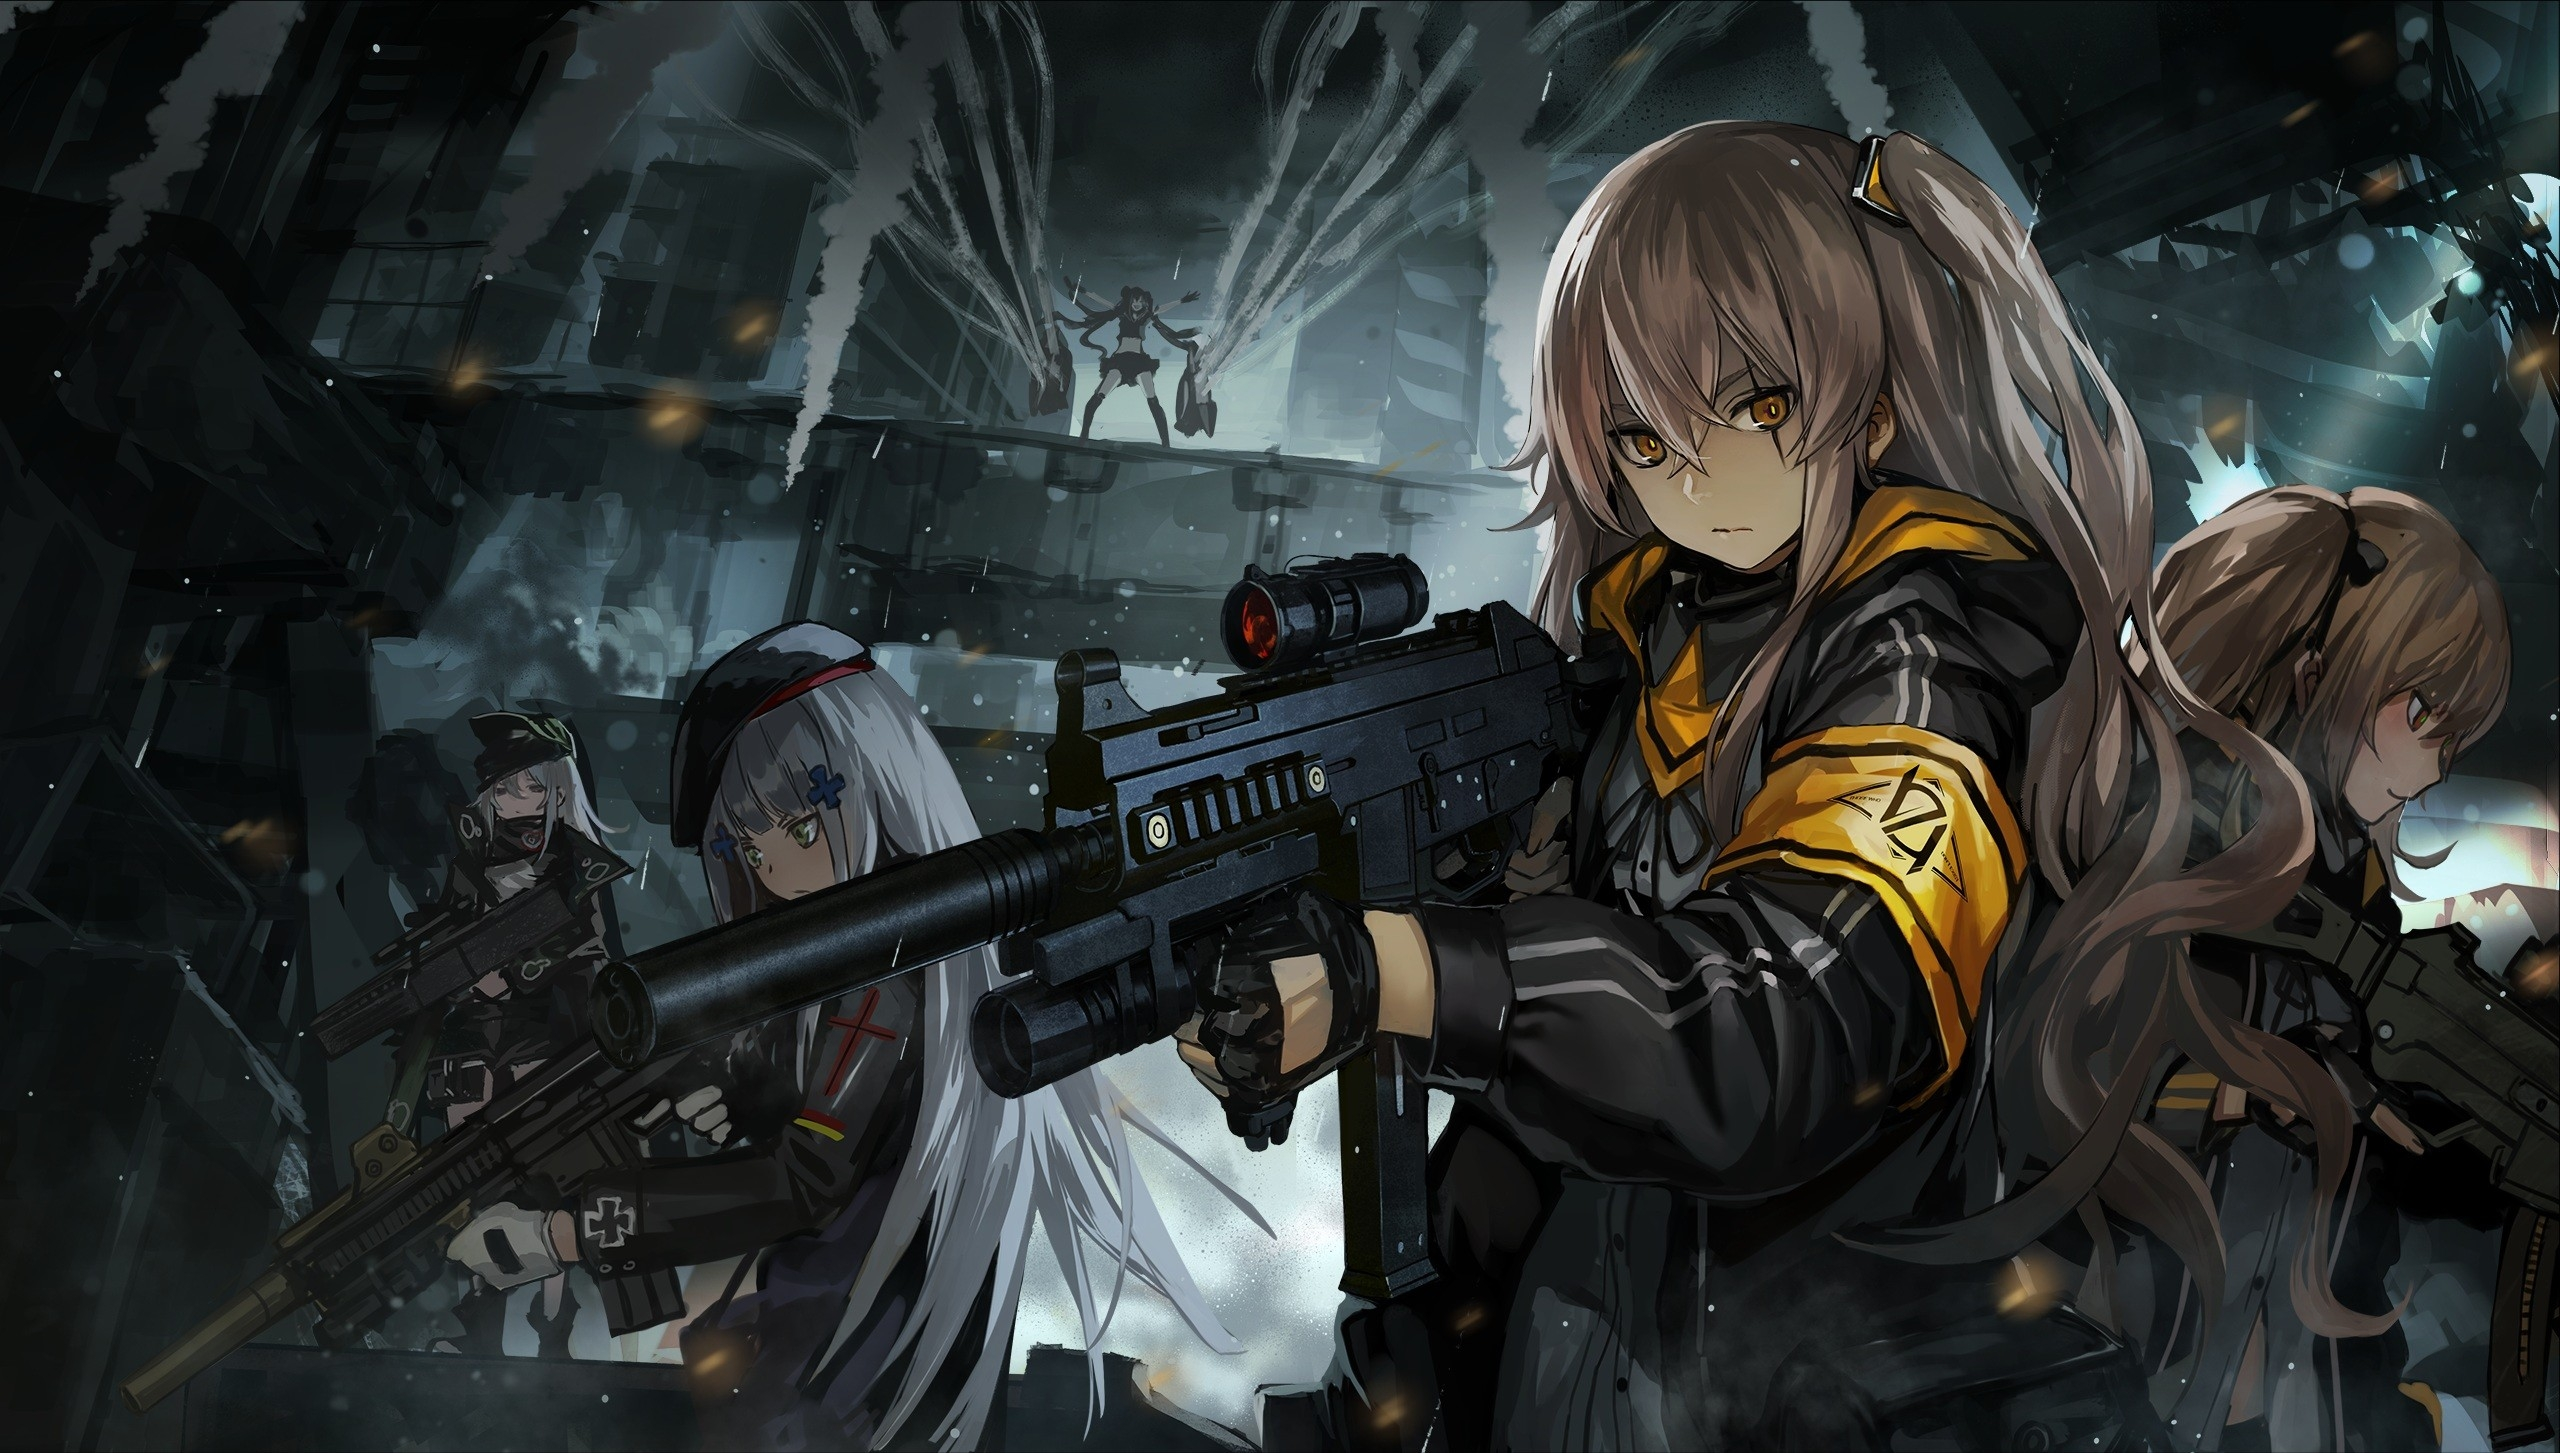 Girls With Guns, Armband, White hair, Long Hair, unknown, Weapons, Dark, Crossover, Cross Necklace, Scars, Yellow Eyes